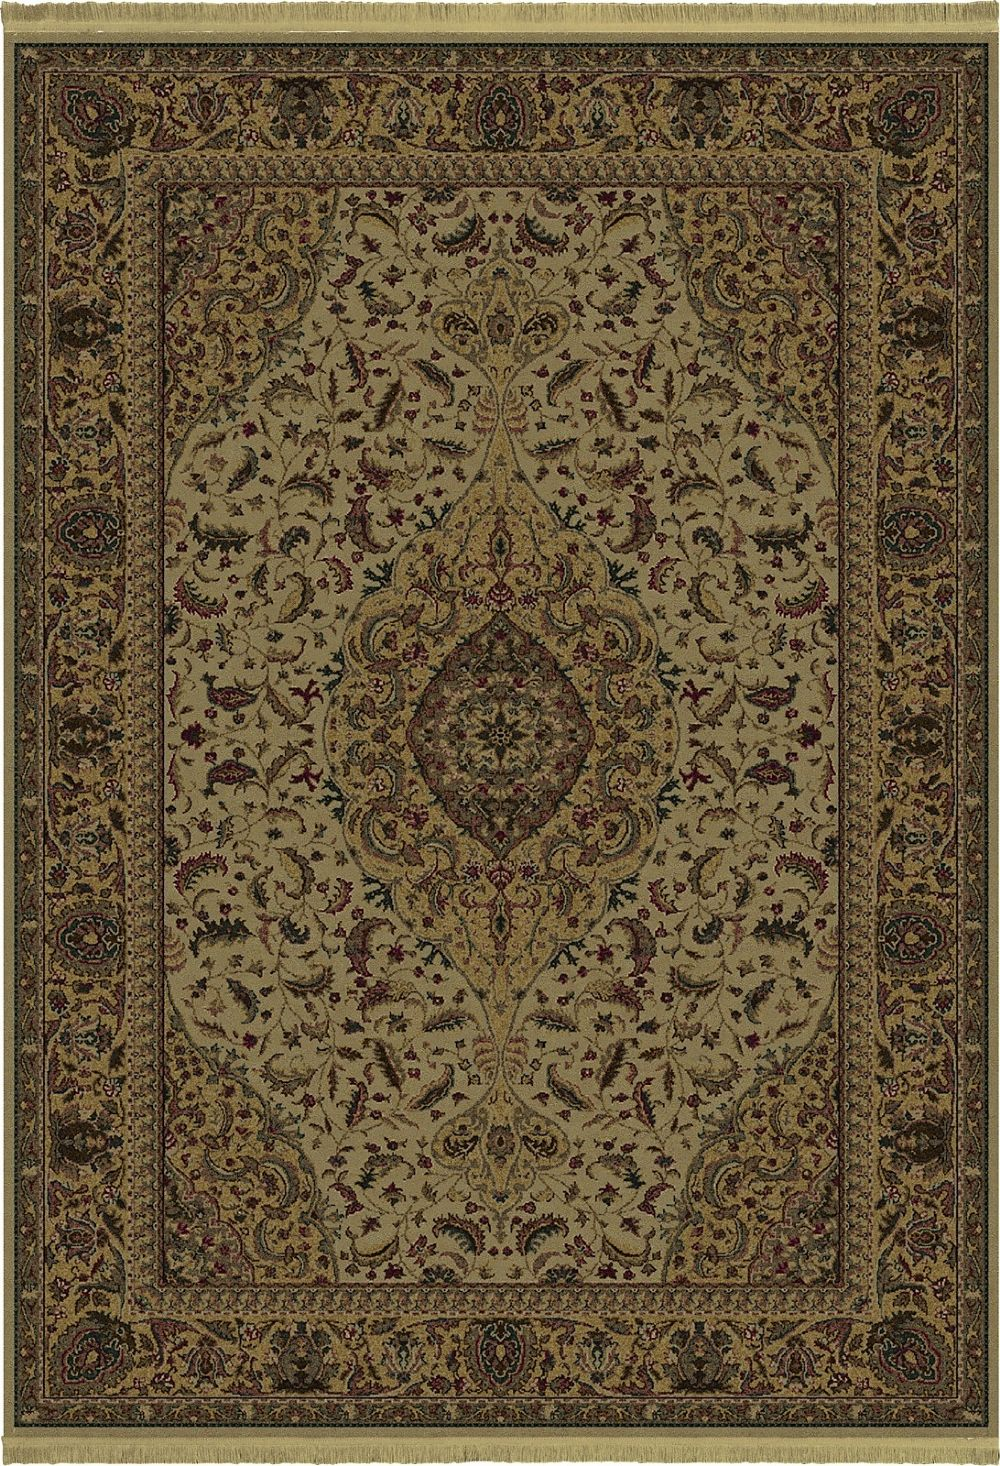 shaw classic style european area rug collection